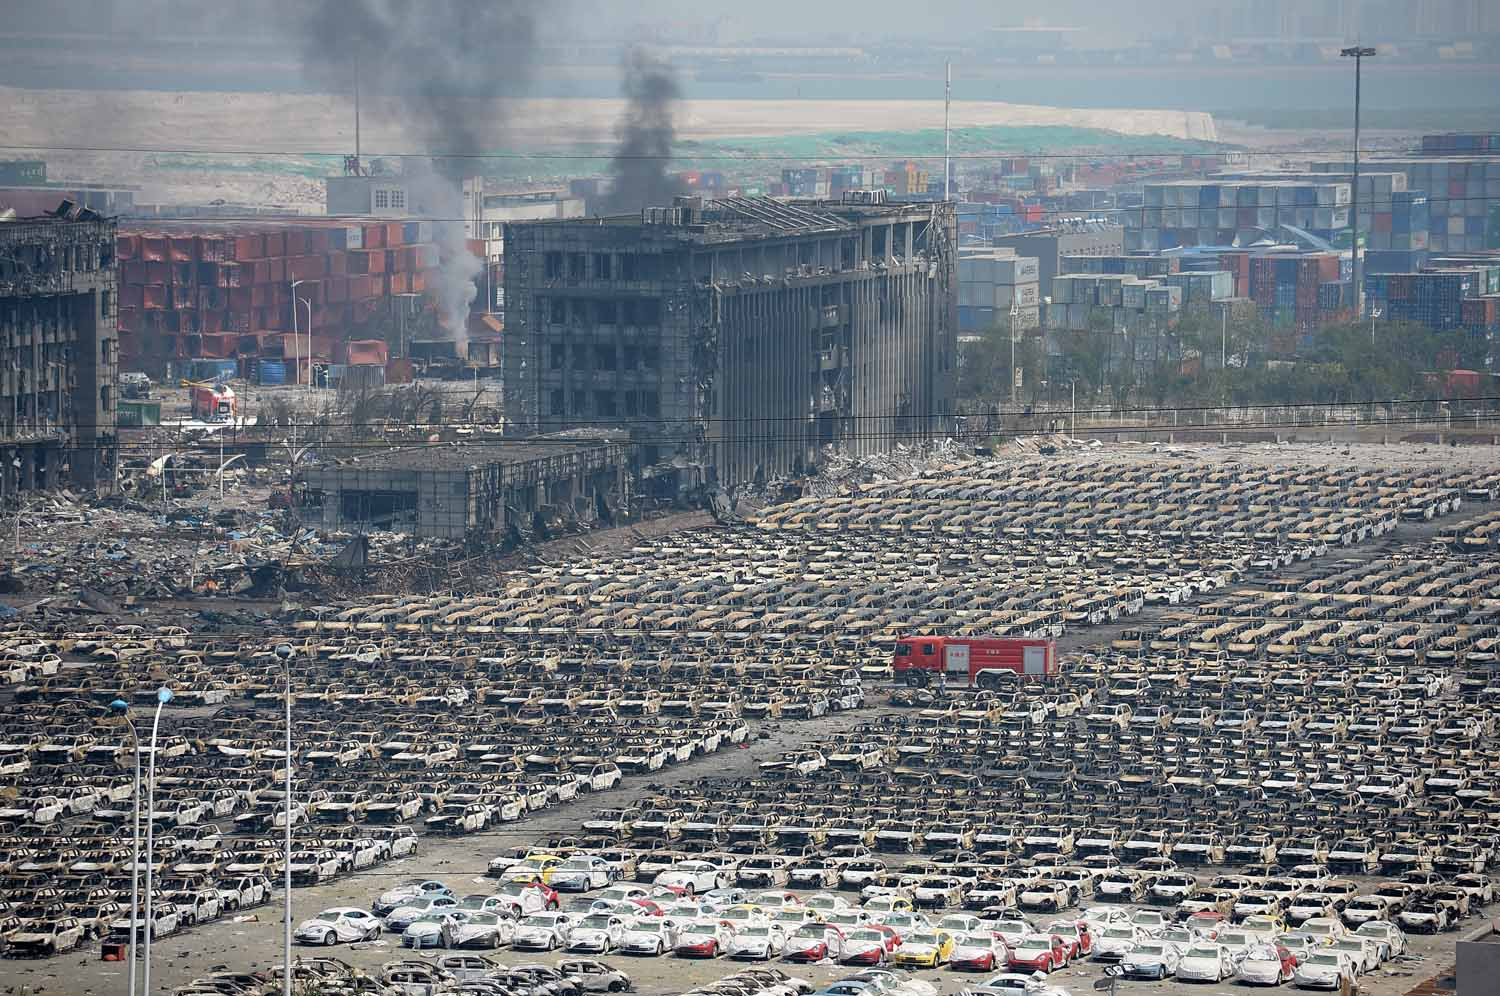 TIANJIN, CHINA - AUGUST 13:  (CHINA OUT) Thousands of burnt and destroyed vehicles are seen in Tianjin's warehouse explosion on August 13, 2015 in Tianjin, China. The death toll from Wednesday warehouse explosions in Tianjin rose to 50 Thursday evening, 17 of whom were firemen, local authorities said.  (Photo by ChinaFotoPress/ChinaFotoPress via Getty Images)